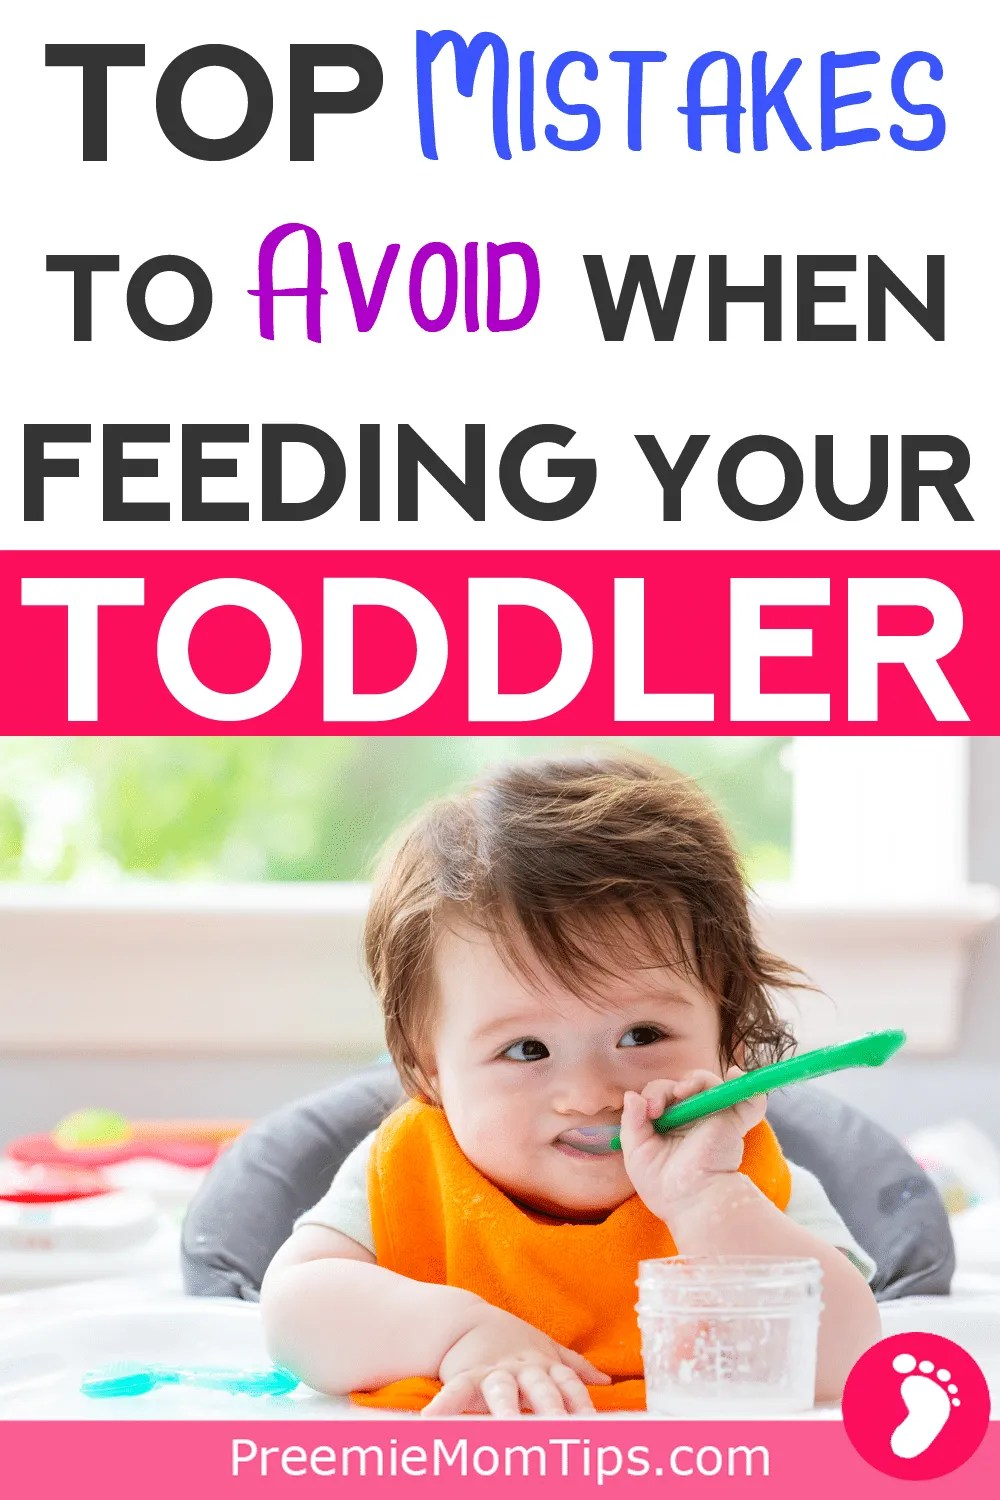 Our toddler is a picky eater. Check out these mistakes we were making, and how we helped our boy eat better and healthier by changing parenting habits!